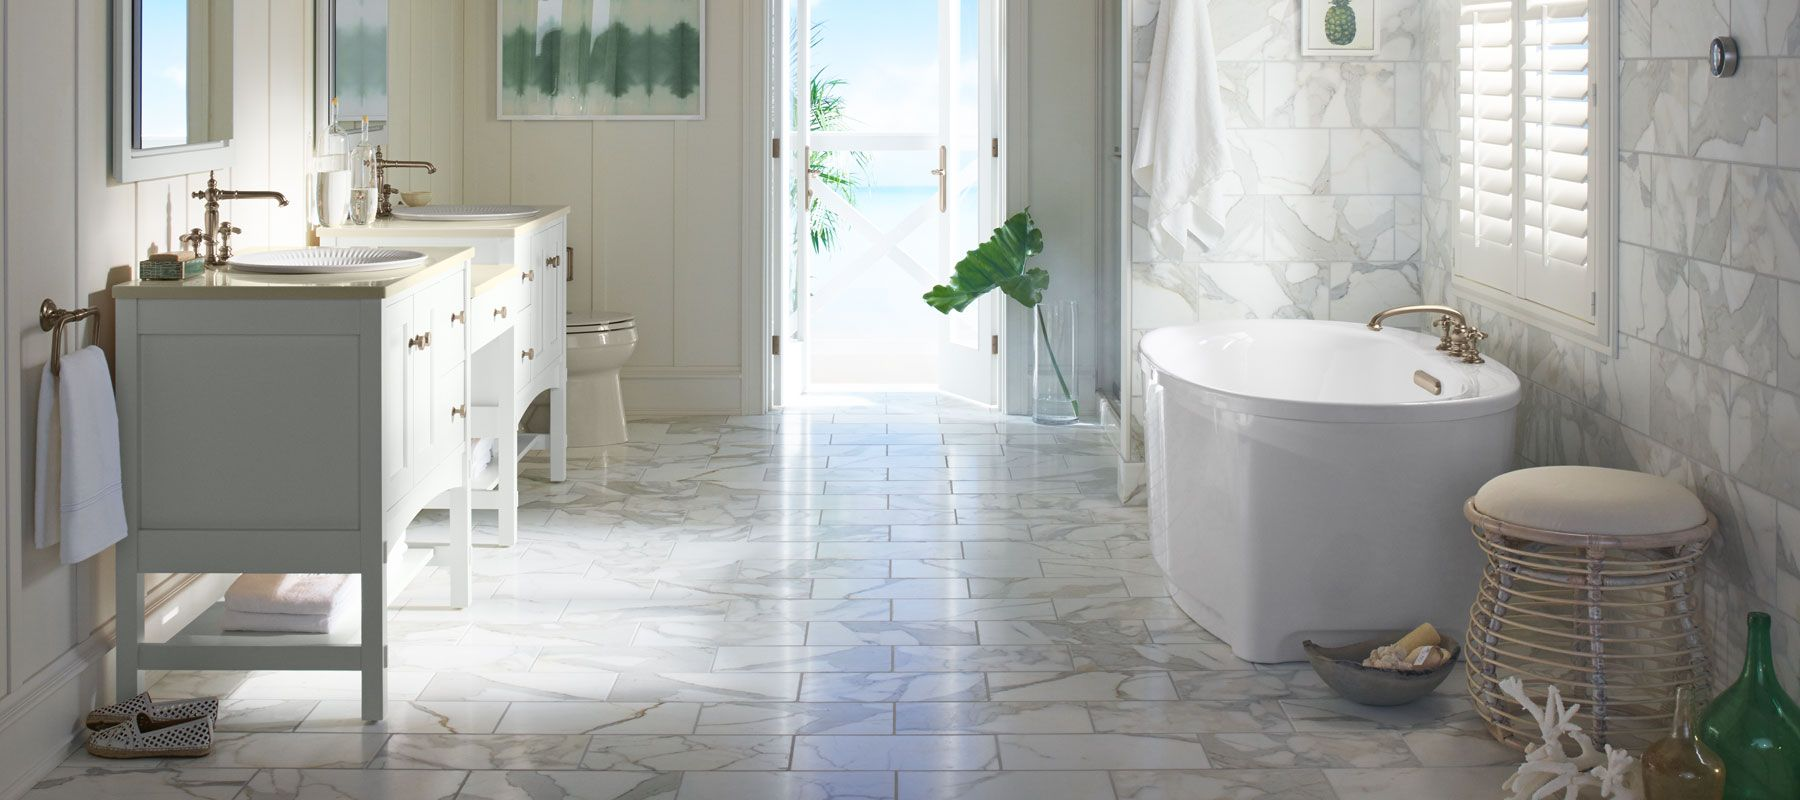 Get Inspired. Floor Plan Options   Bathroom Ideas   Planning   Bathroom   KOHLER